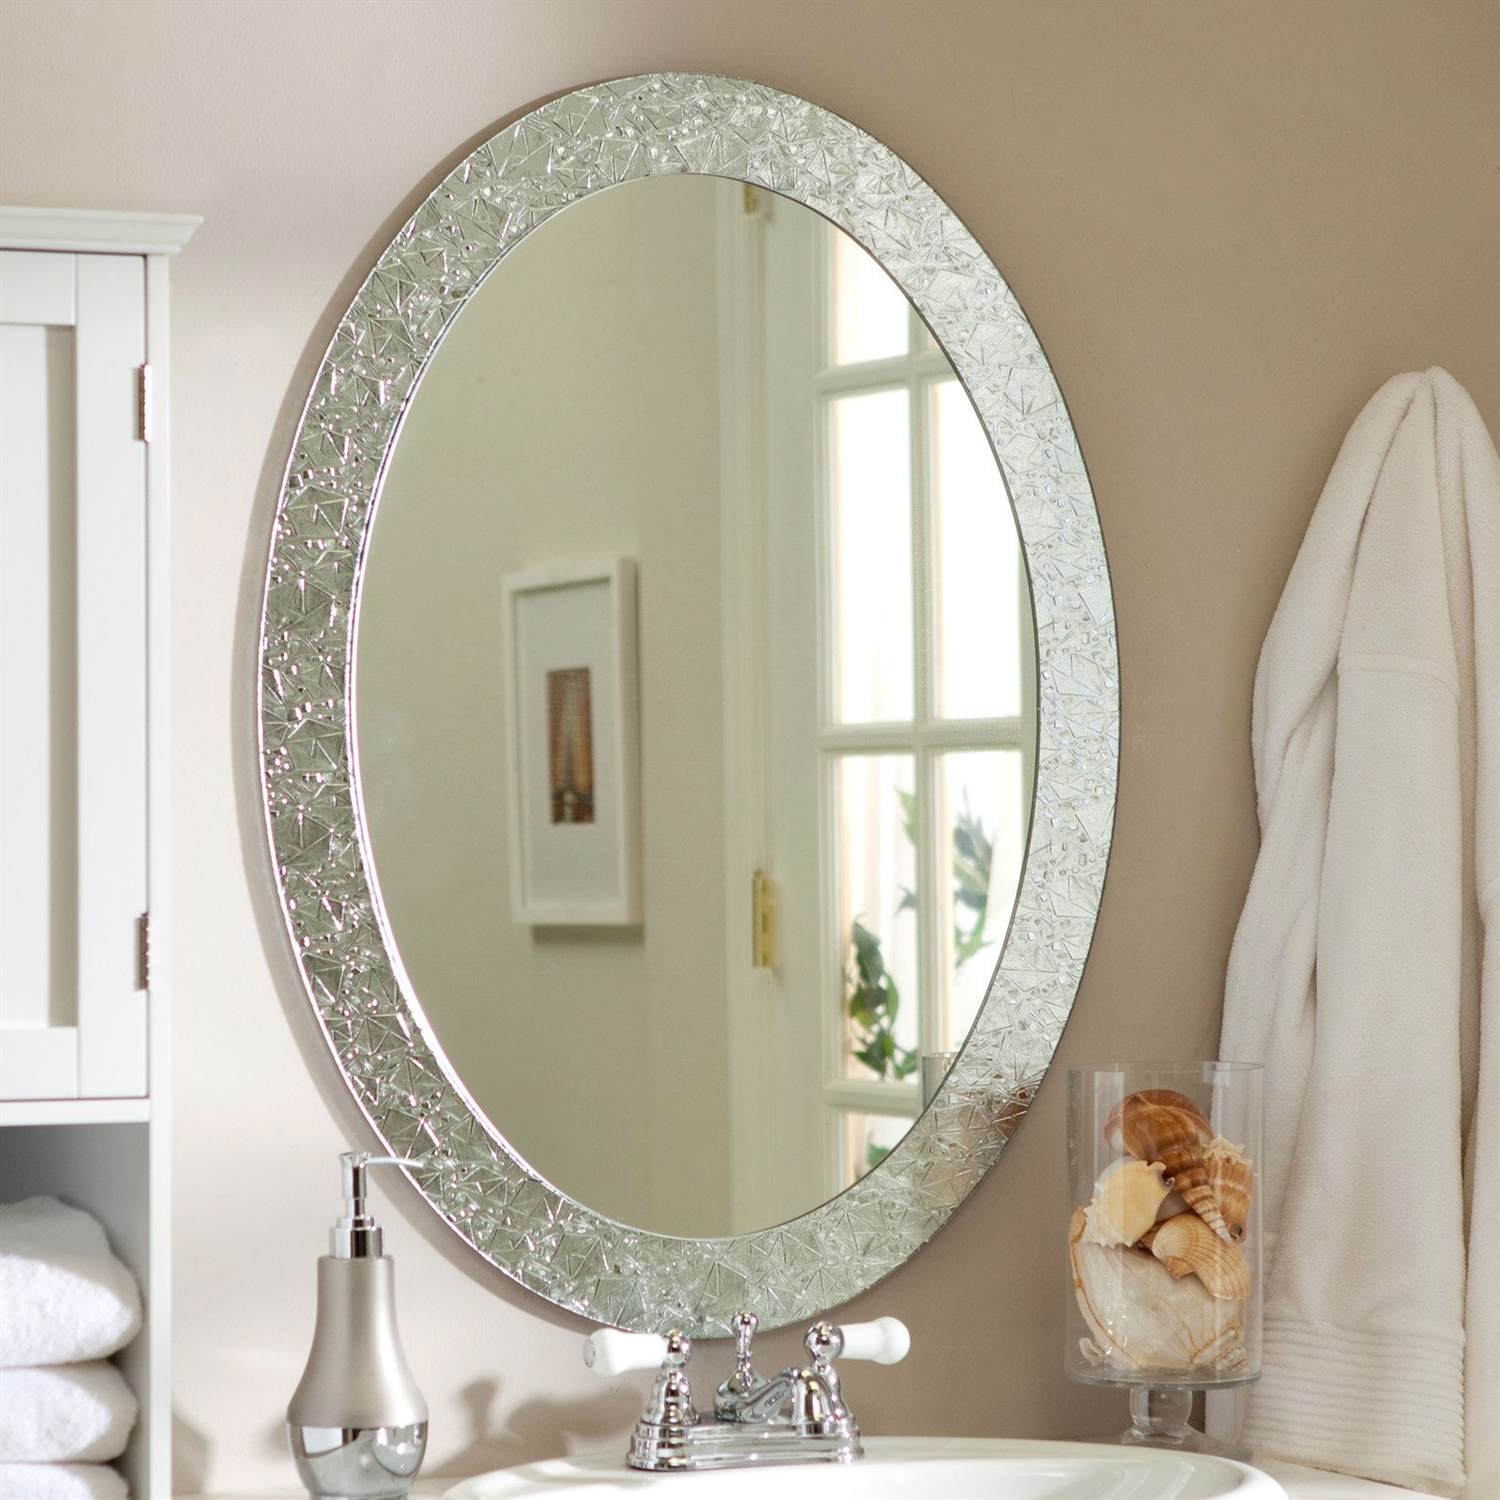 Oval Frame Less Bathroom Vanity Wall Mirror With Elegant Crystal Border